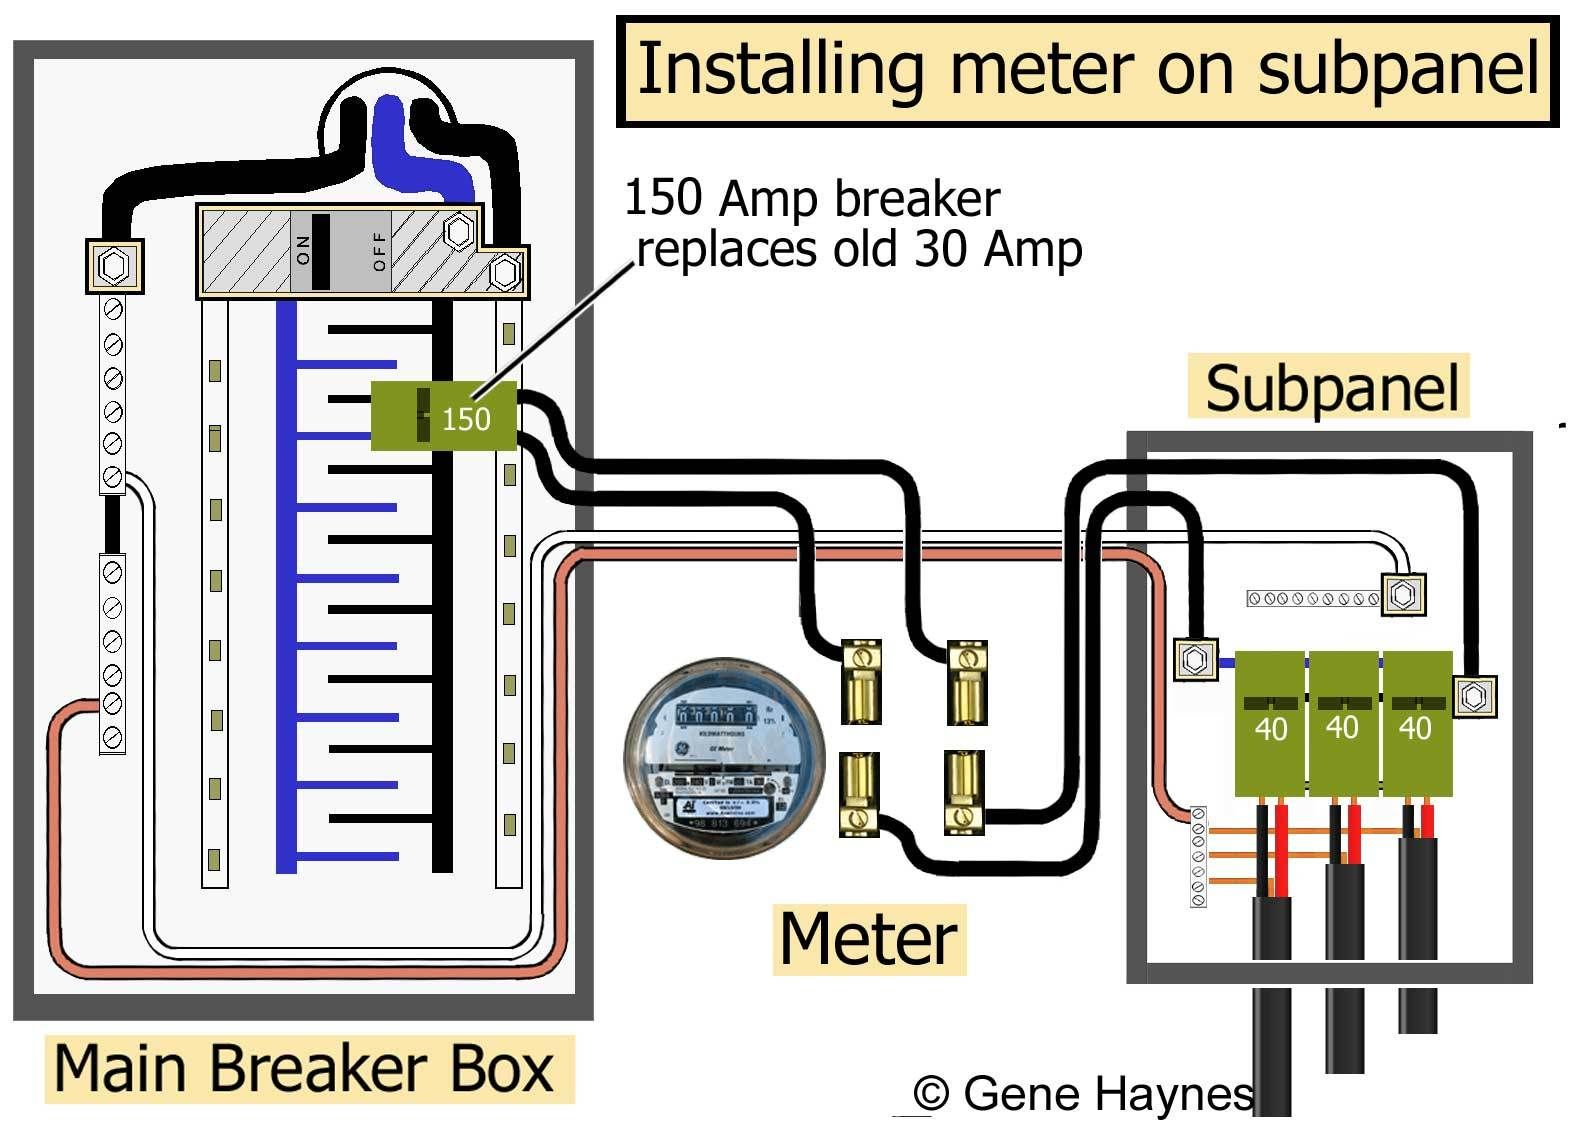 electric sub meter wiring diagram - wirdig, Wiring diagram